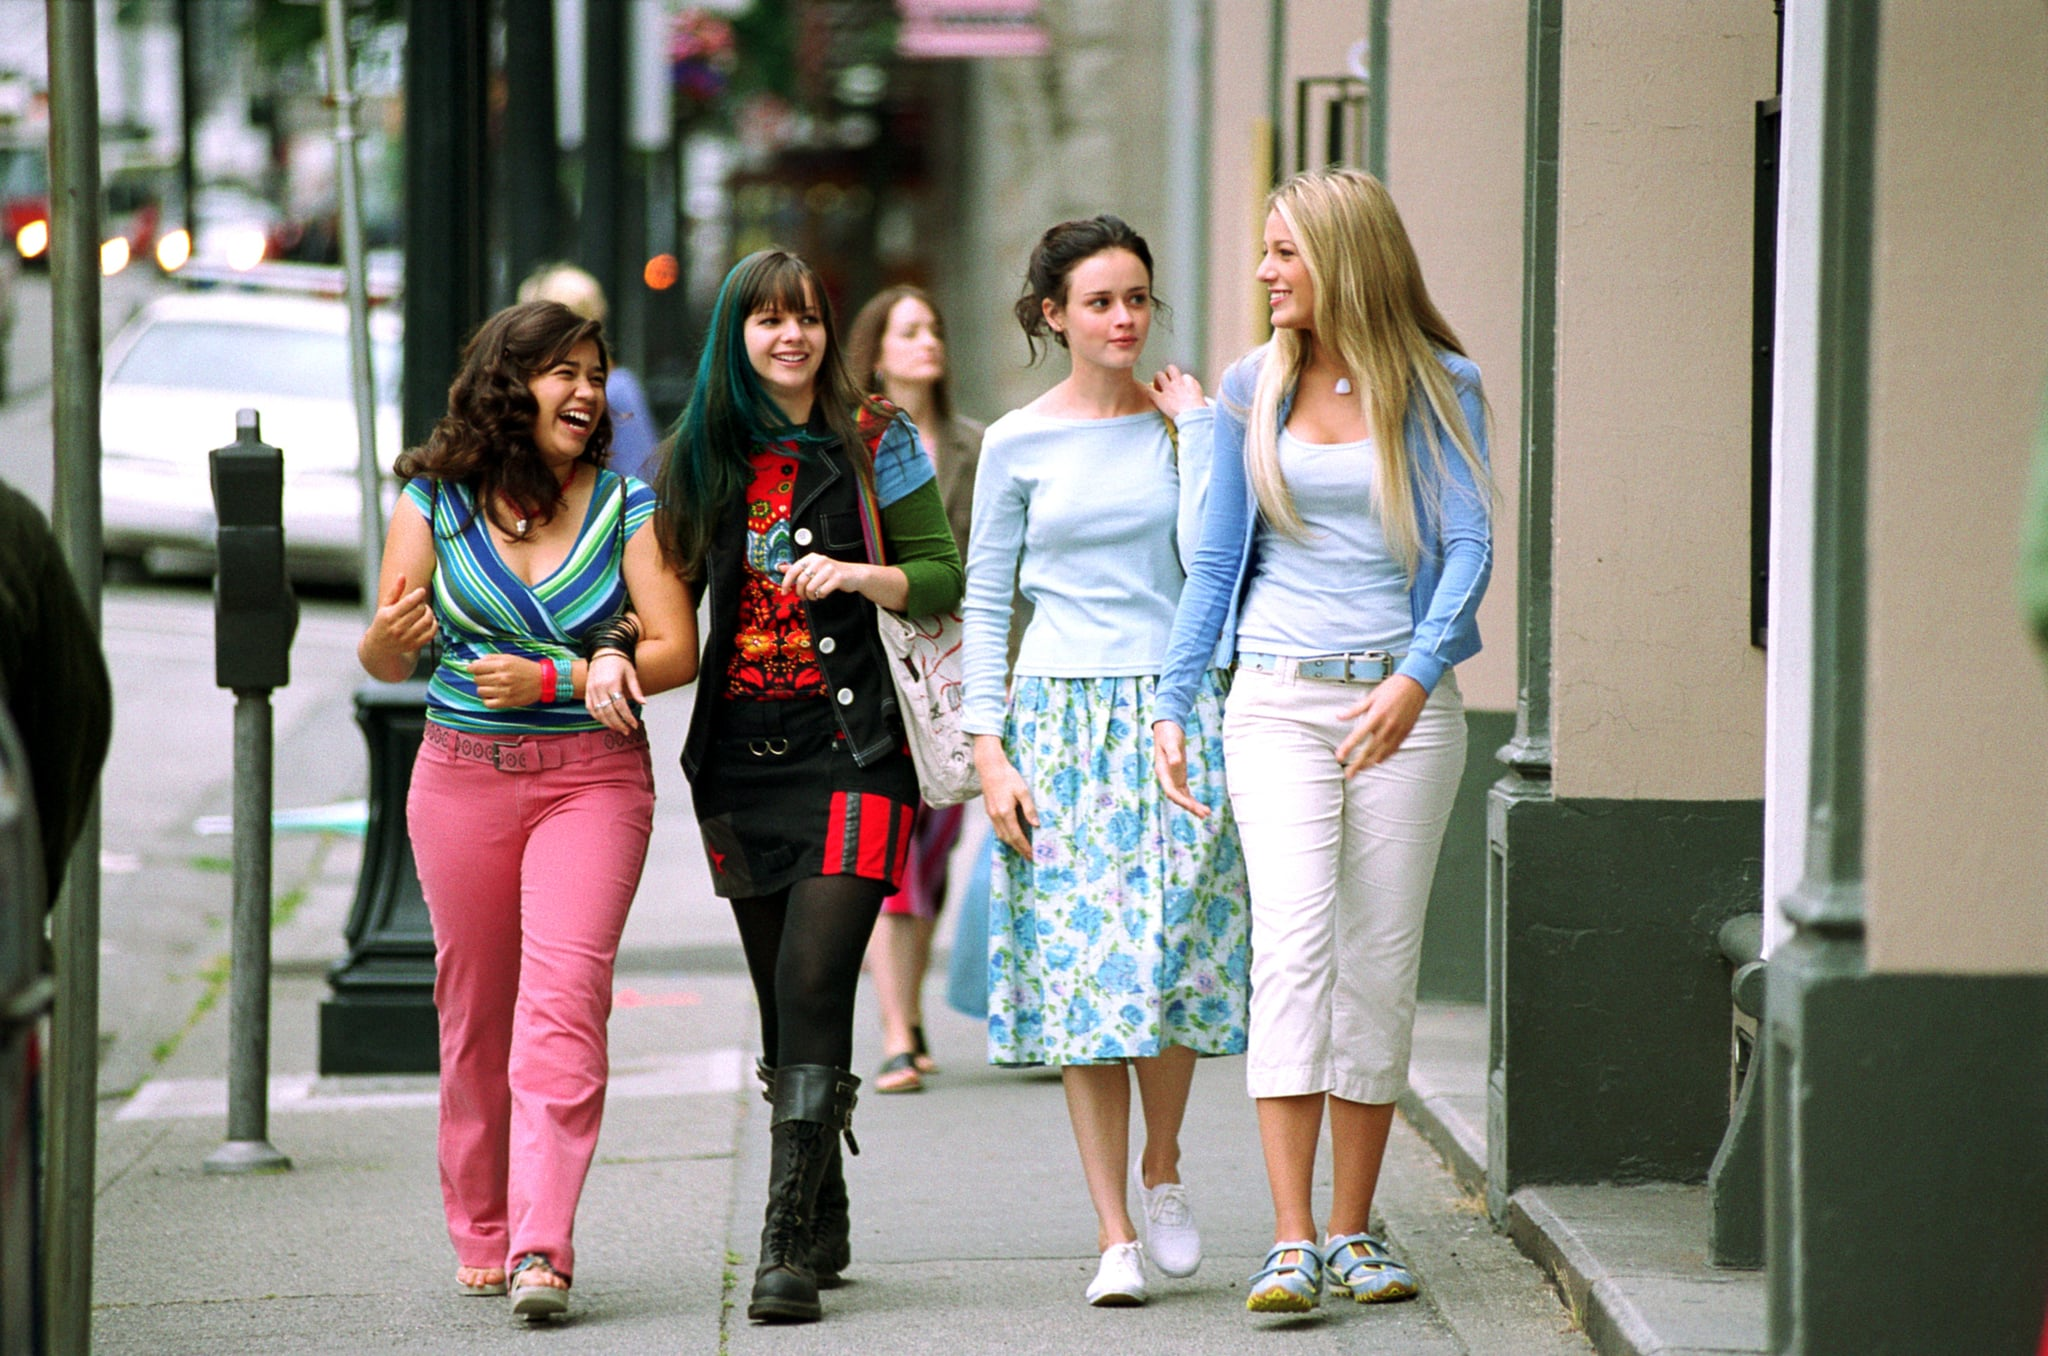 THE SISTERHOOD OF THE TRAVELING PANTS, America Ferrera, Amber Tamblyn, Alexis Bledel, Blake Lively, 2005, (c) Warner Brothers/courtesy Everett Collection